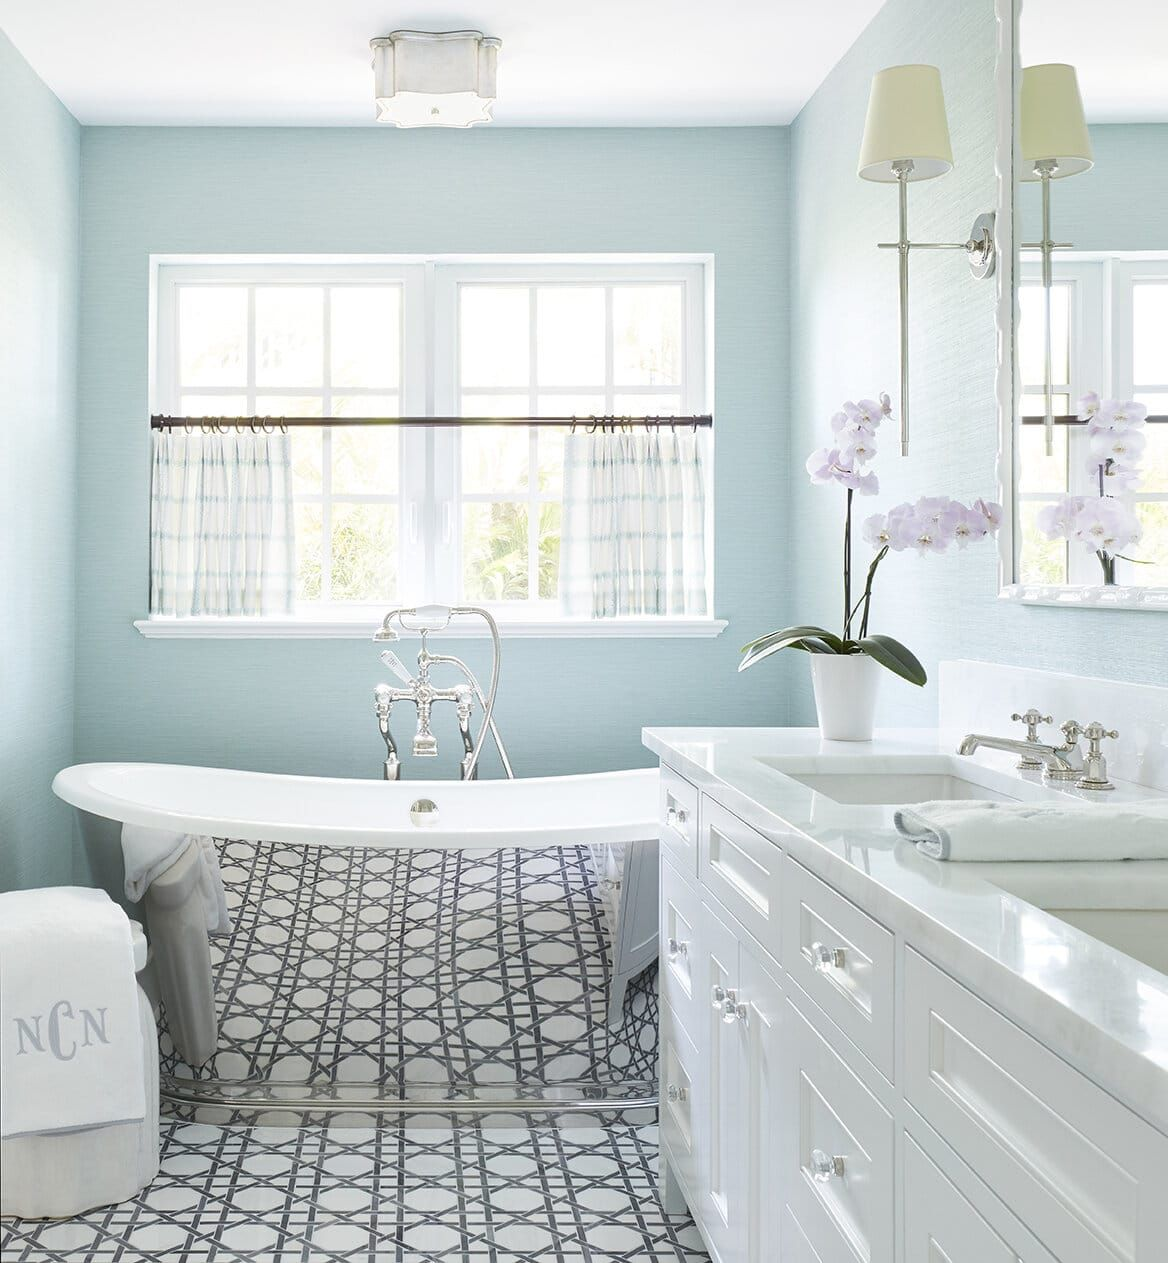 House Tour Kara Miller S Colony Ii Part 2 Design Chic In 2020 House Beautiful Bathrooms Interior